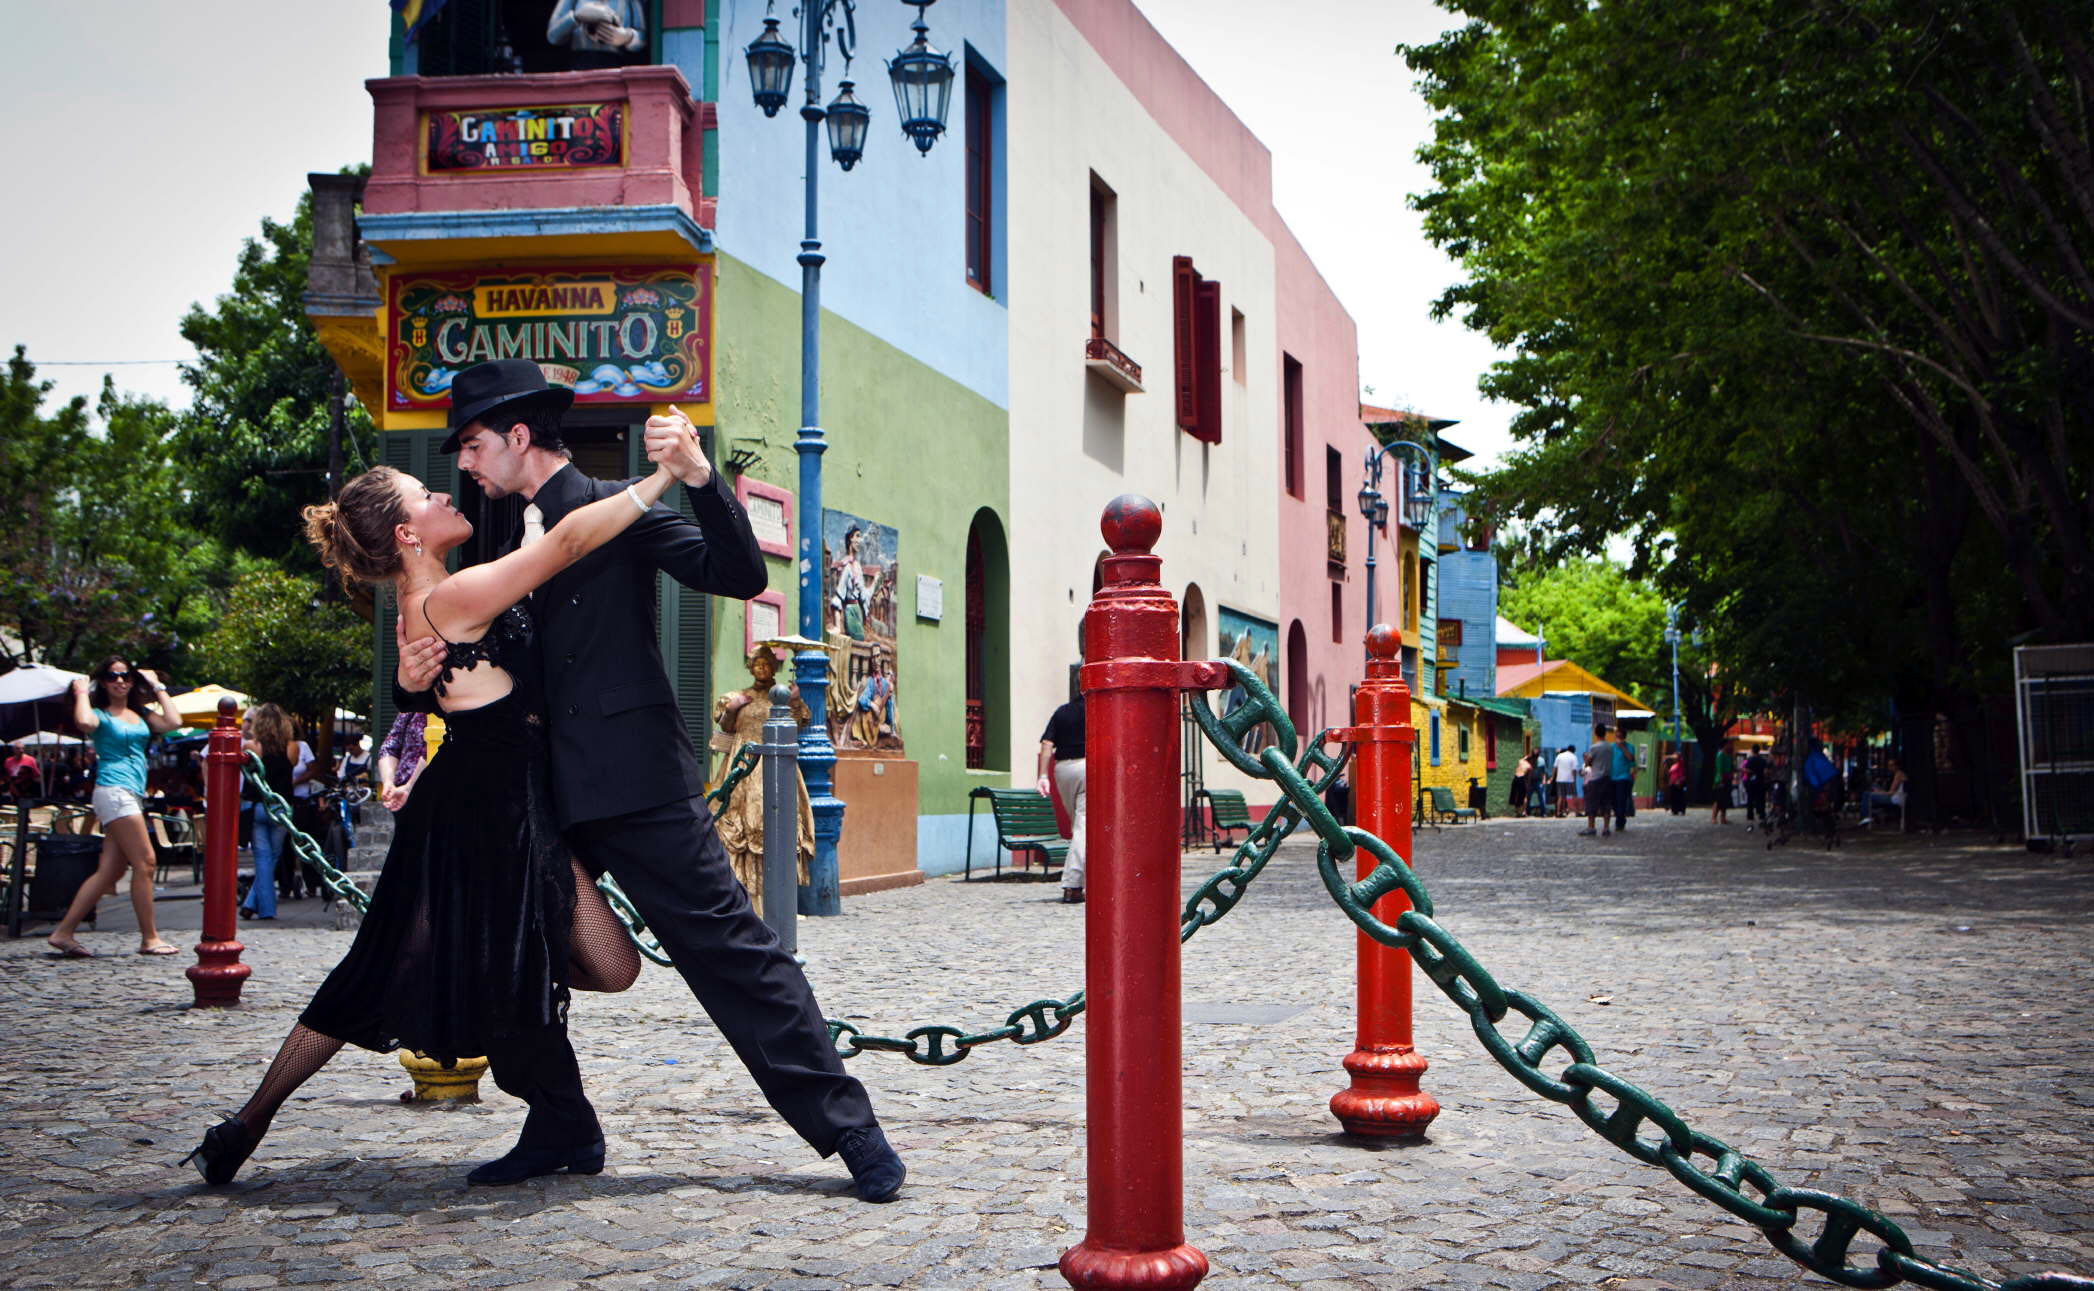 Dancing in Buenos Aires (Image credit - Argentina Travel Blog)